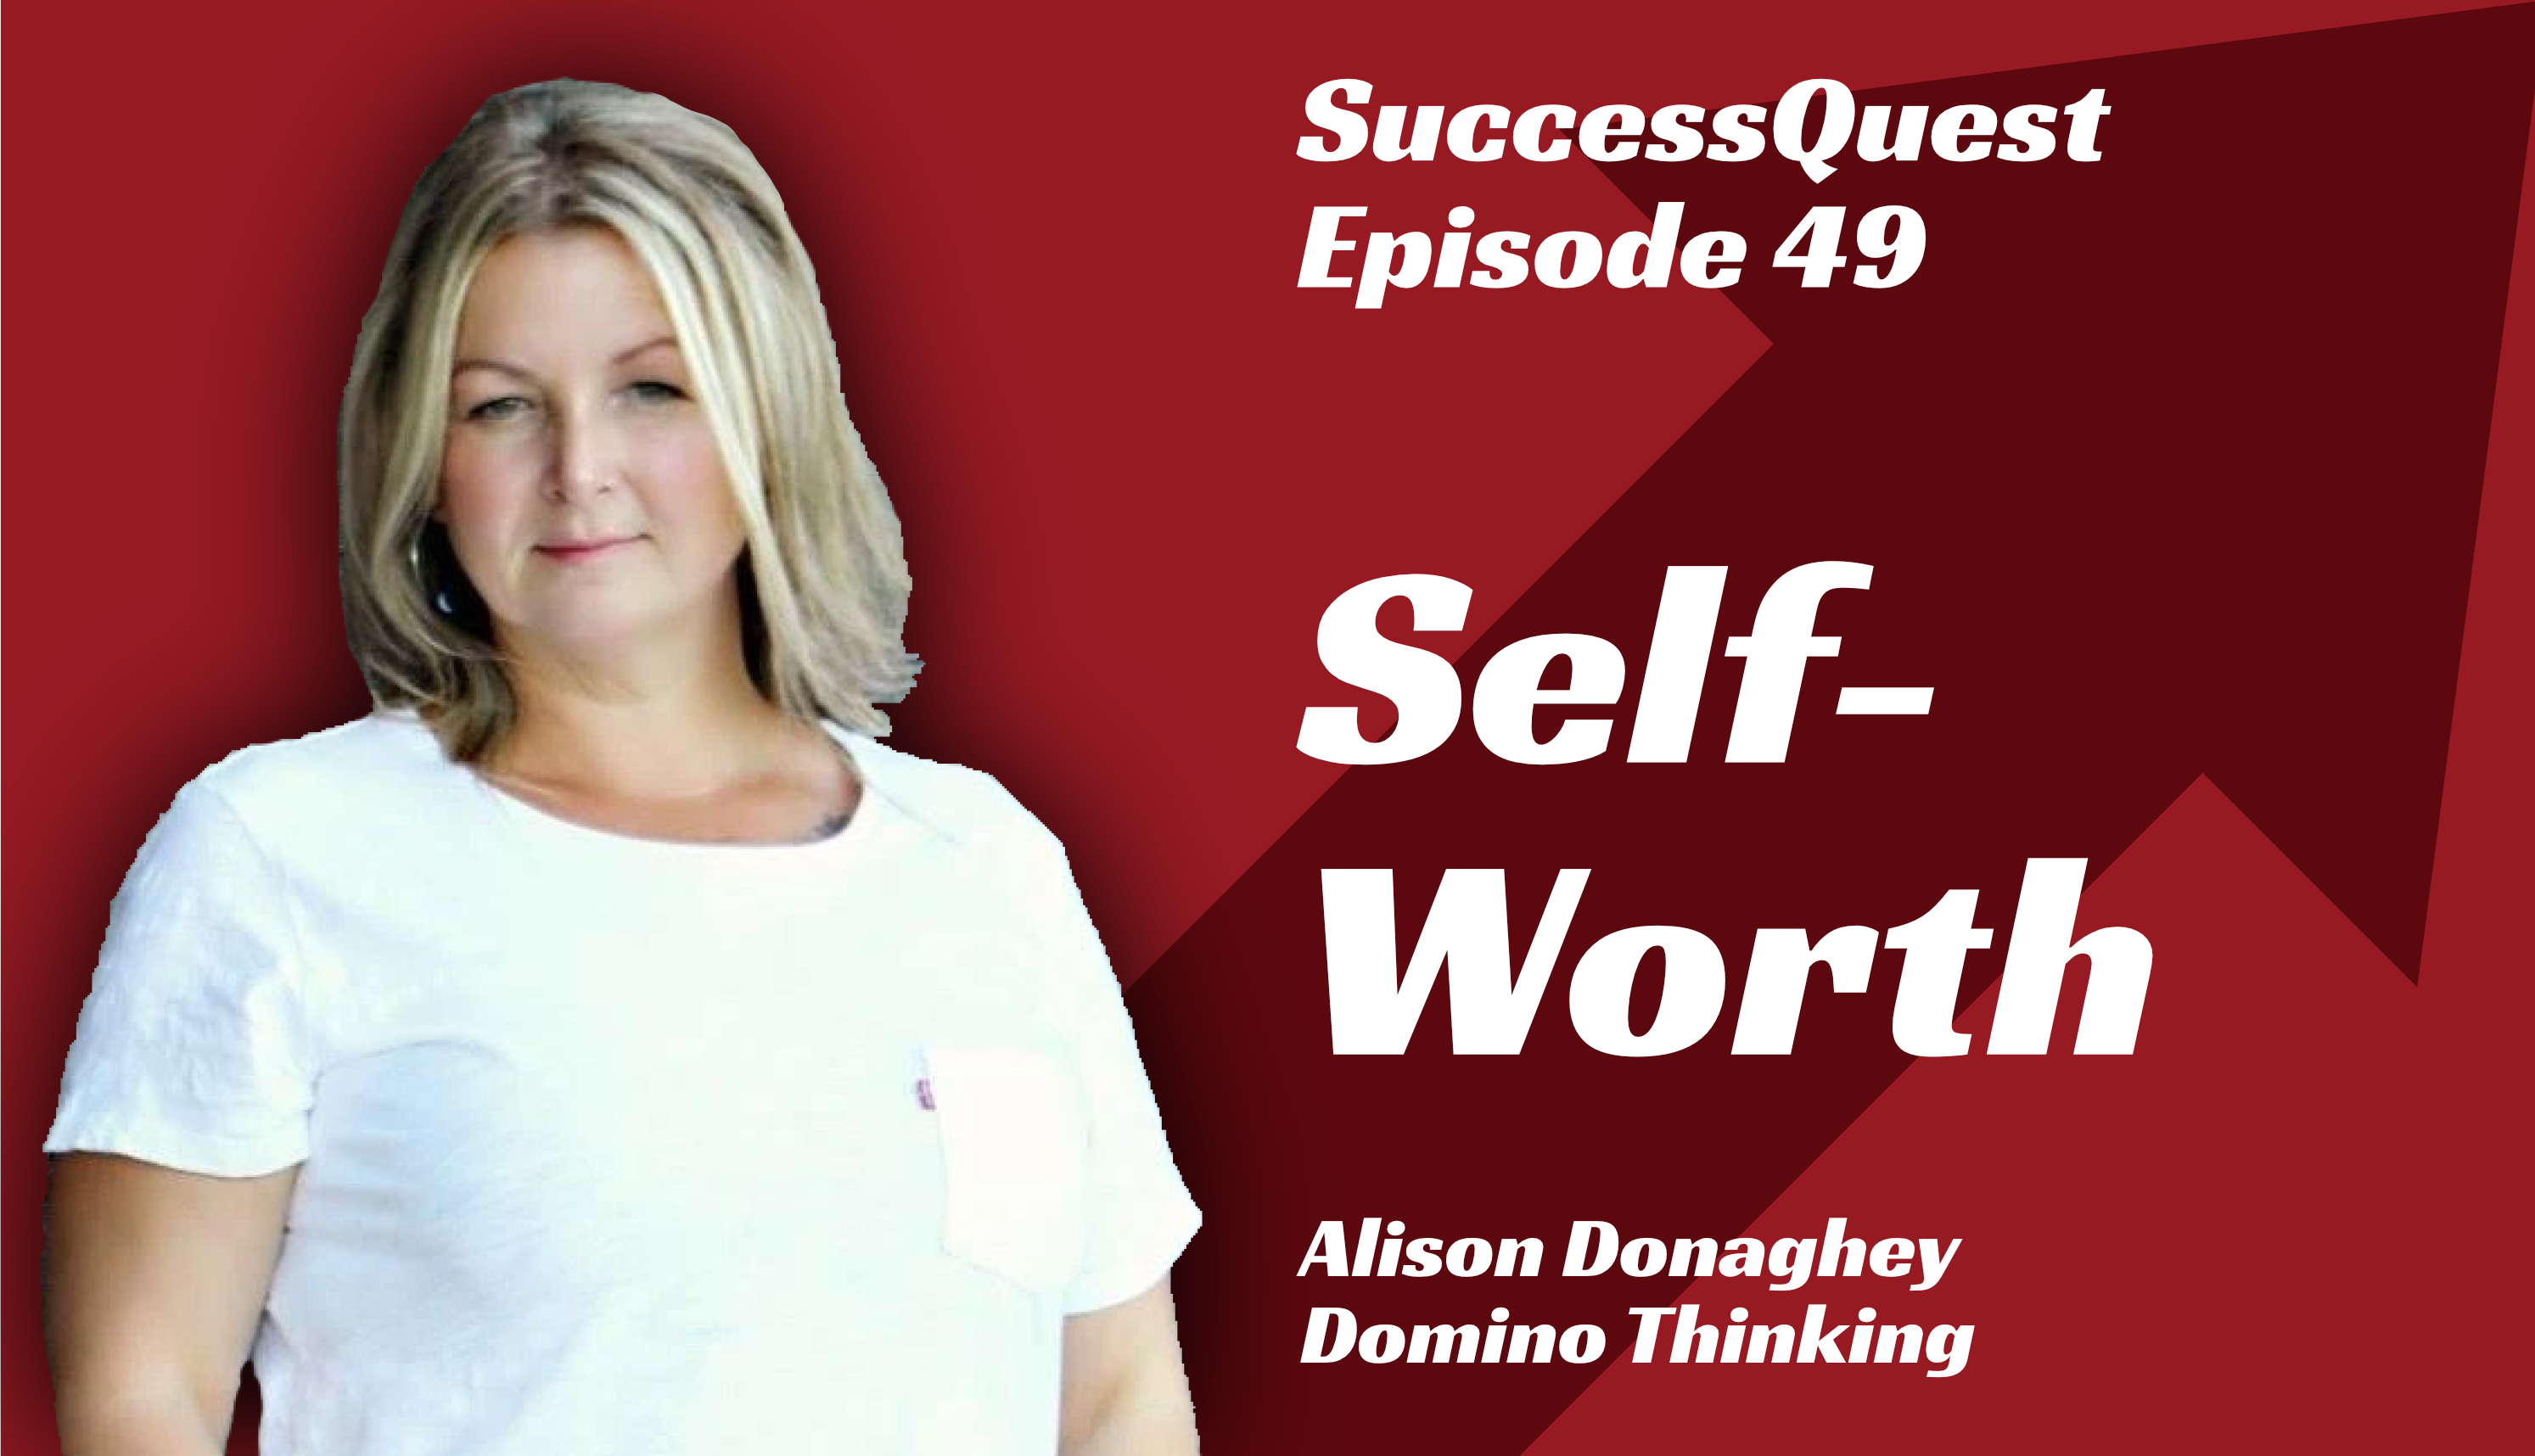 self-worth Alison Donaghey domino thinking success quest